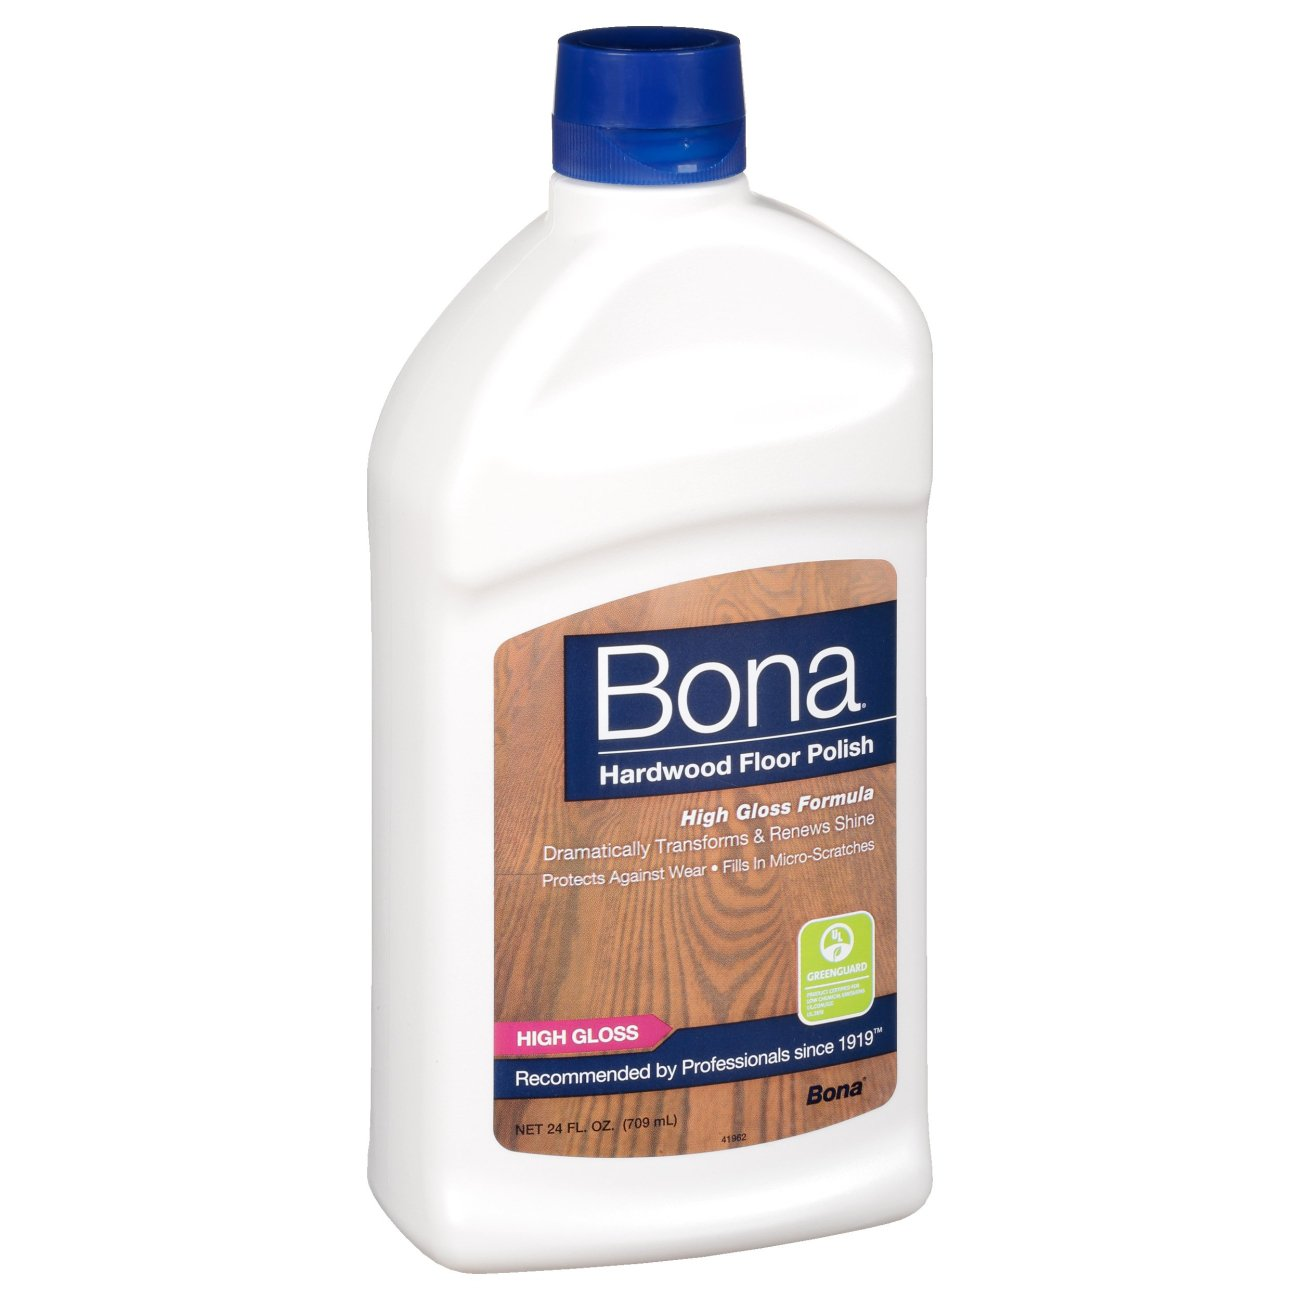 Bona Hardwood Floor Polish   Shop Furniture And Floor At HEB